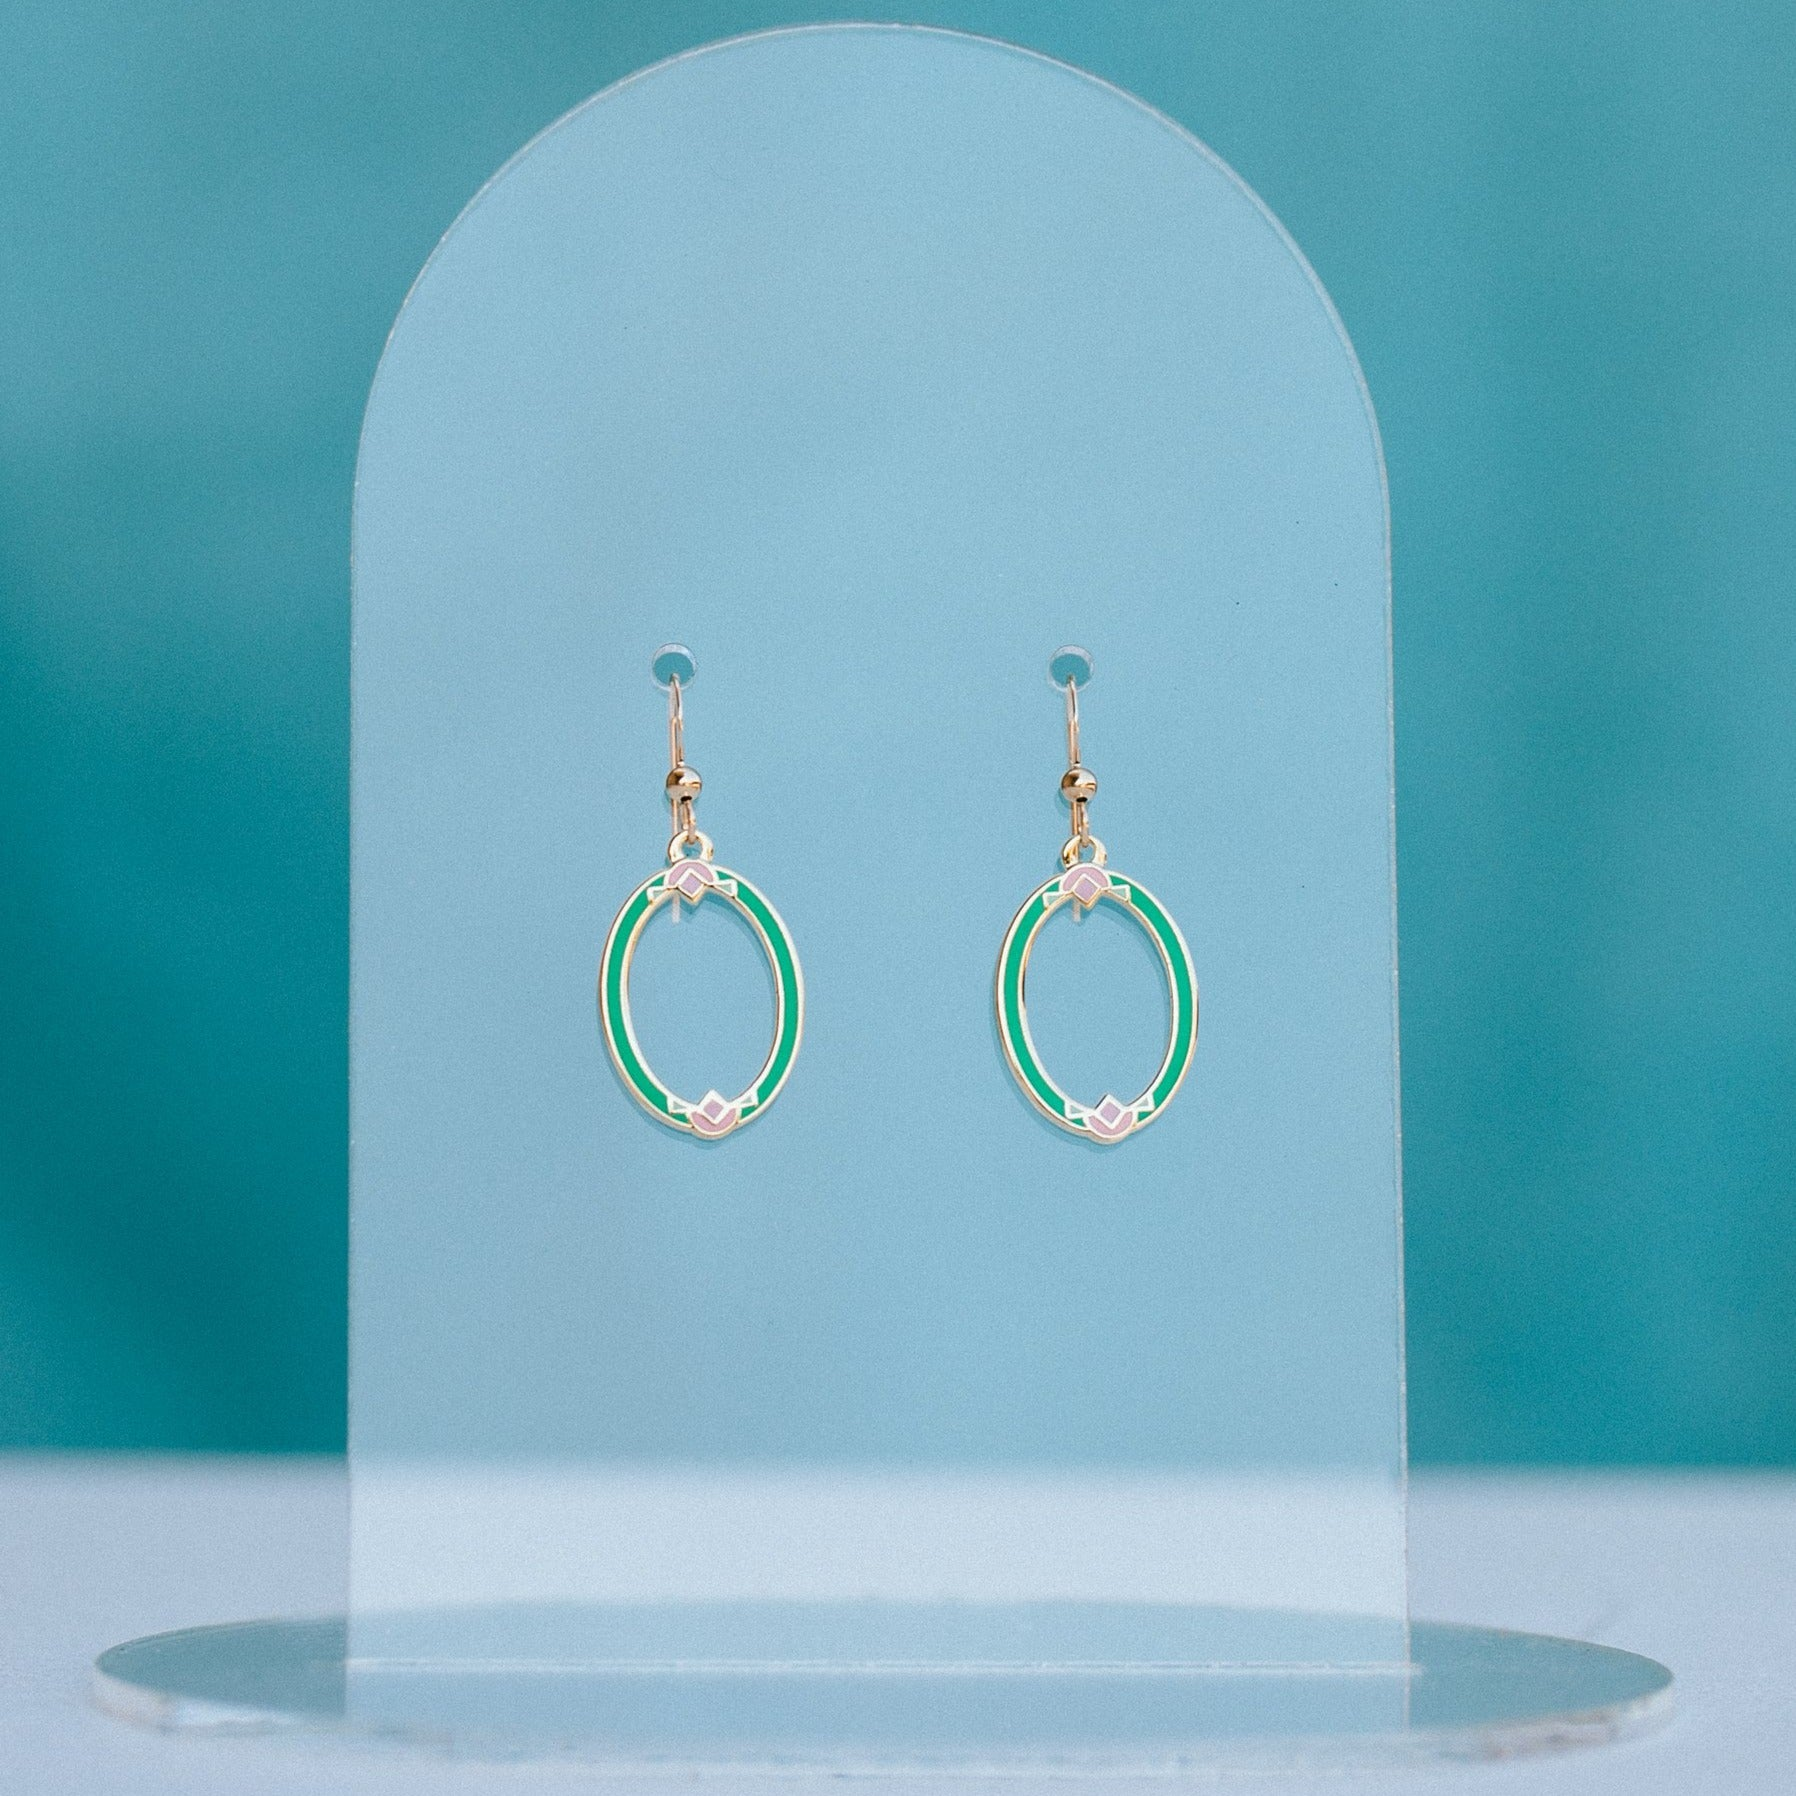 Geo - March19 - Art Deco Earrings